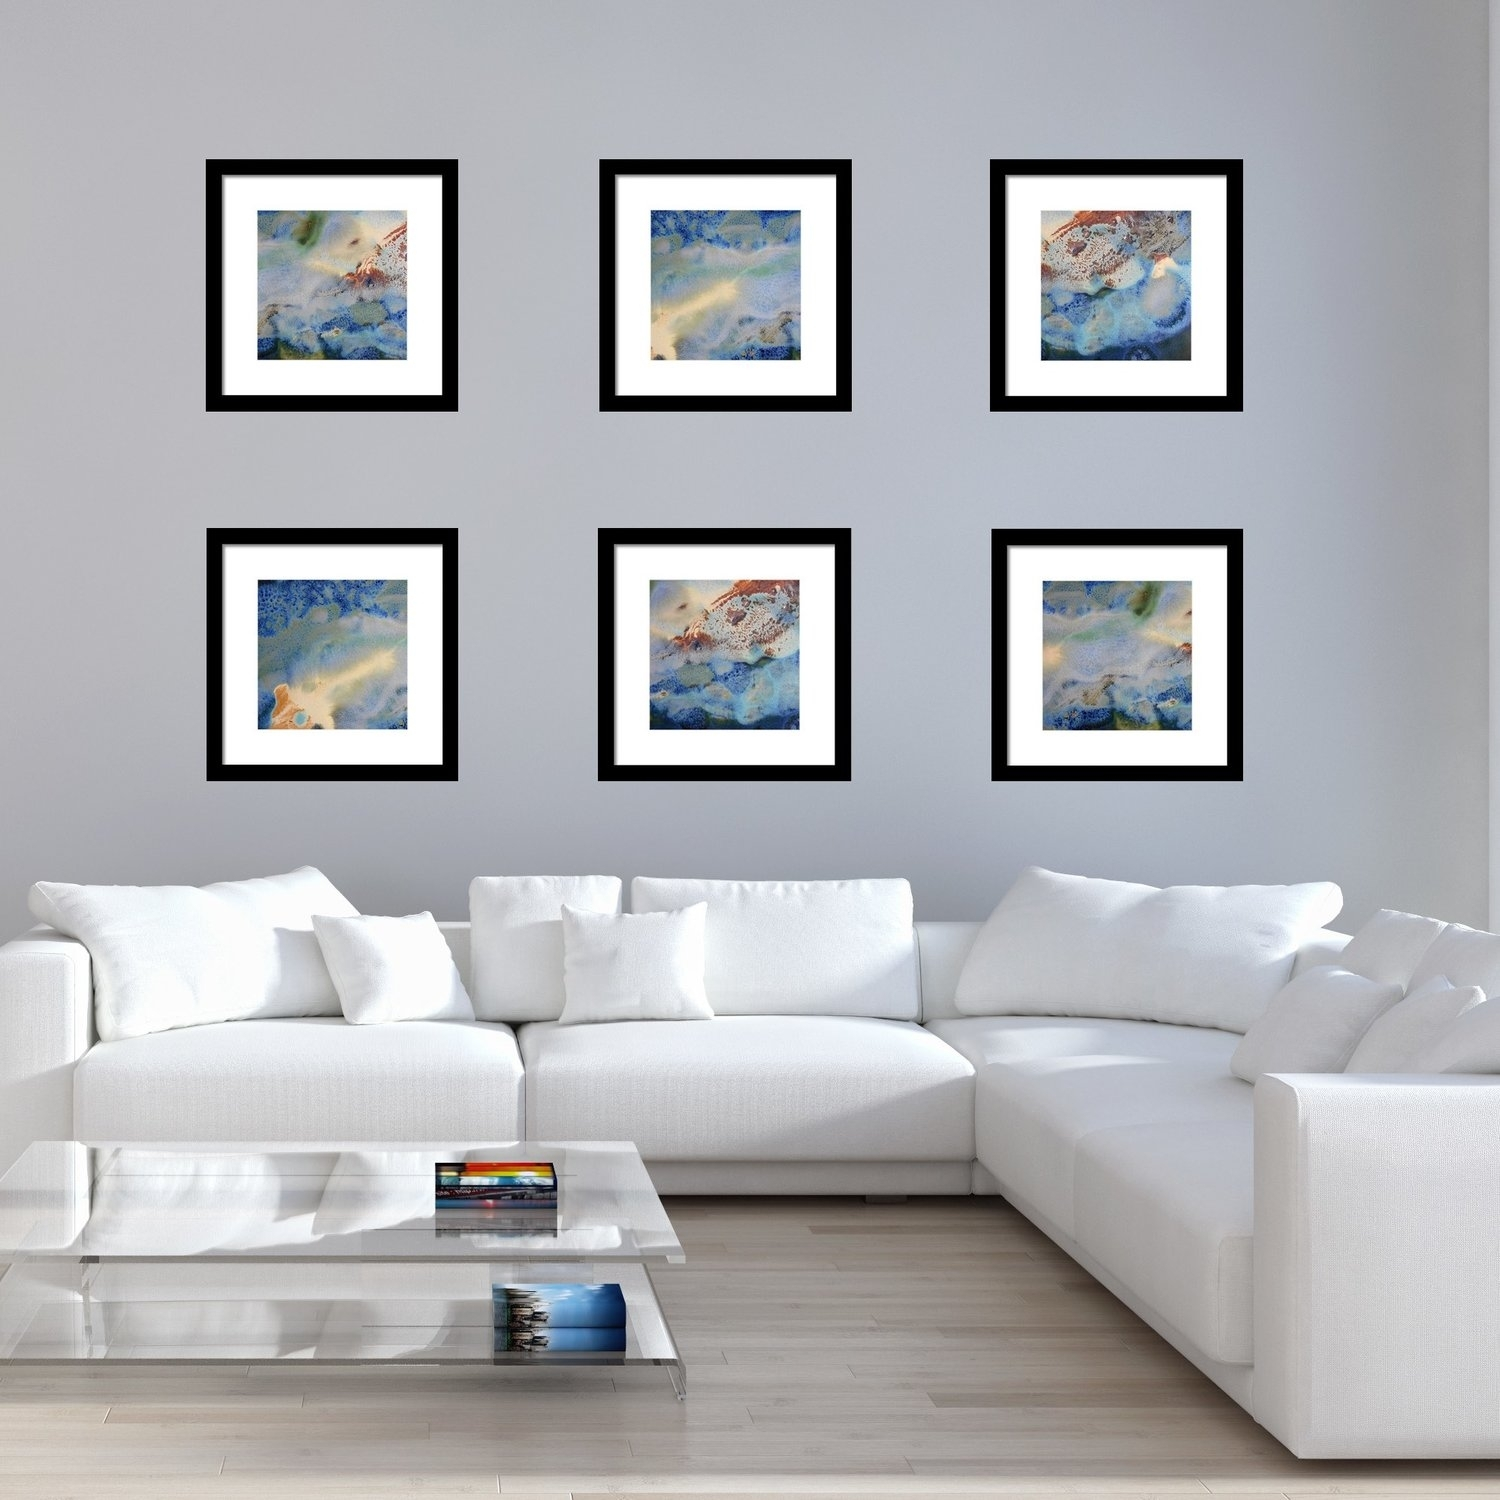 15 Best Abstract Framed Art Prints